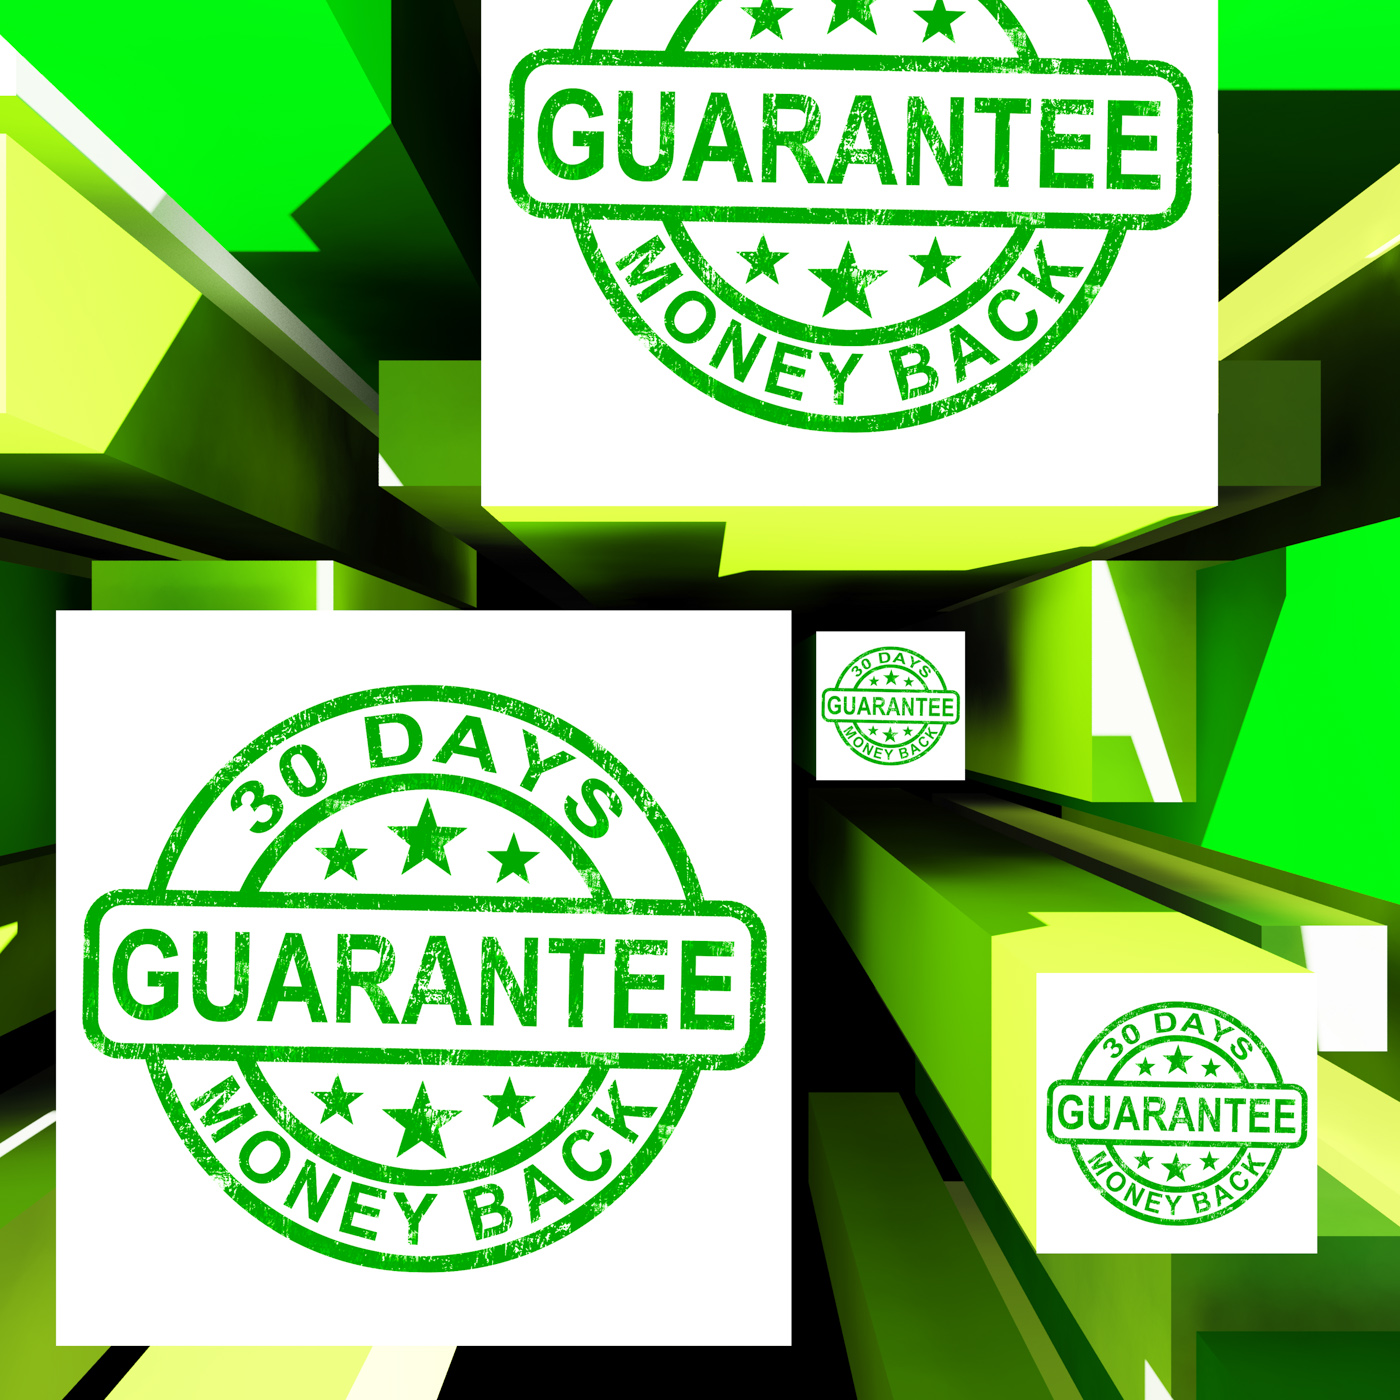 Guarantee on cubes shows certificated item photo